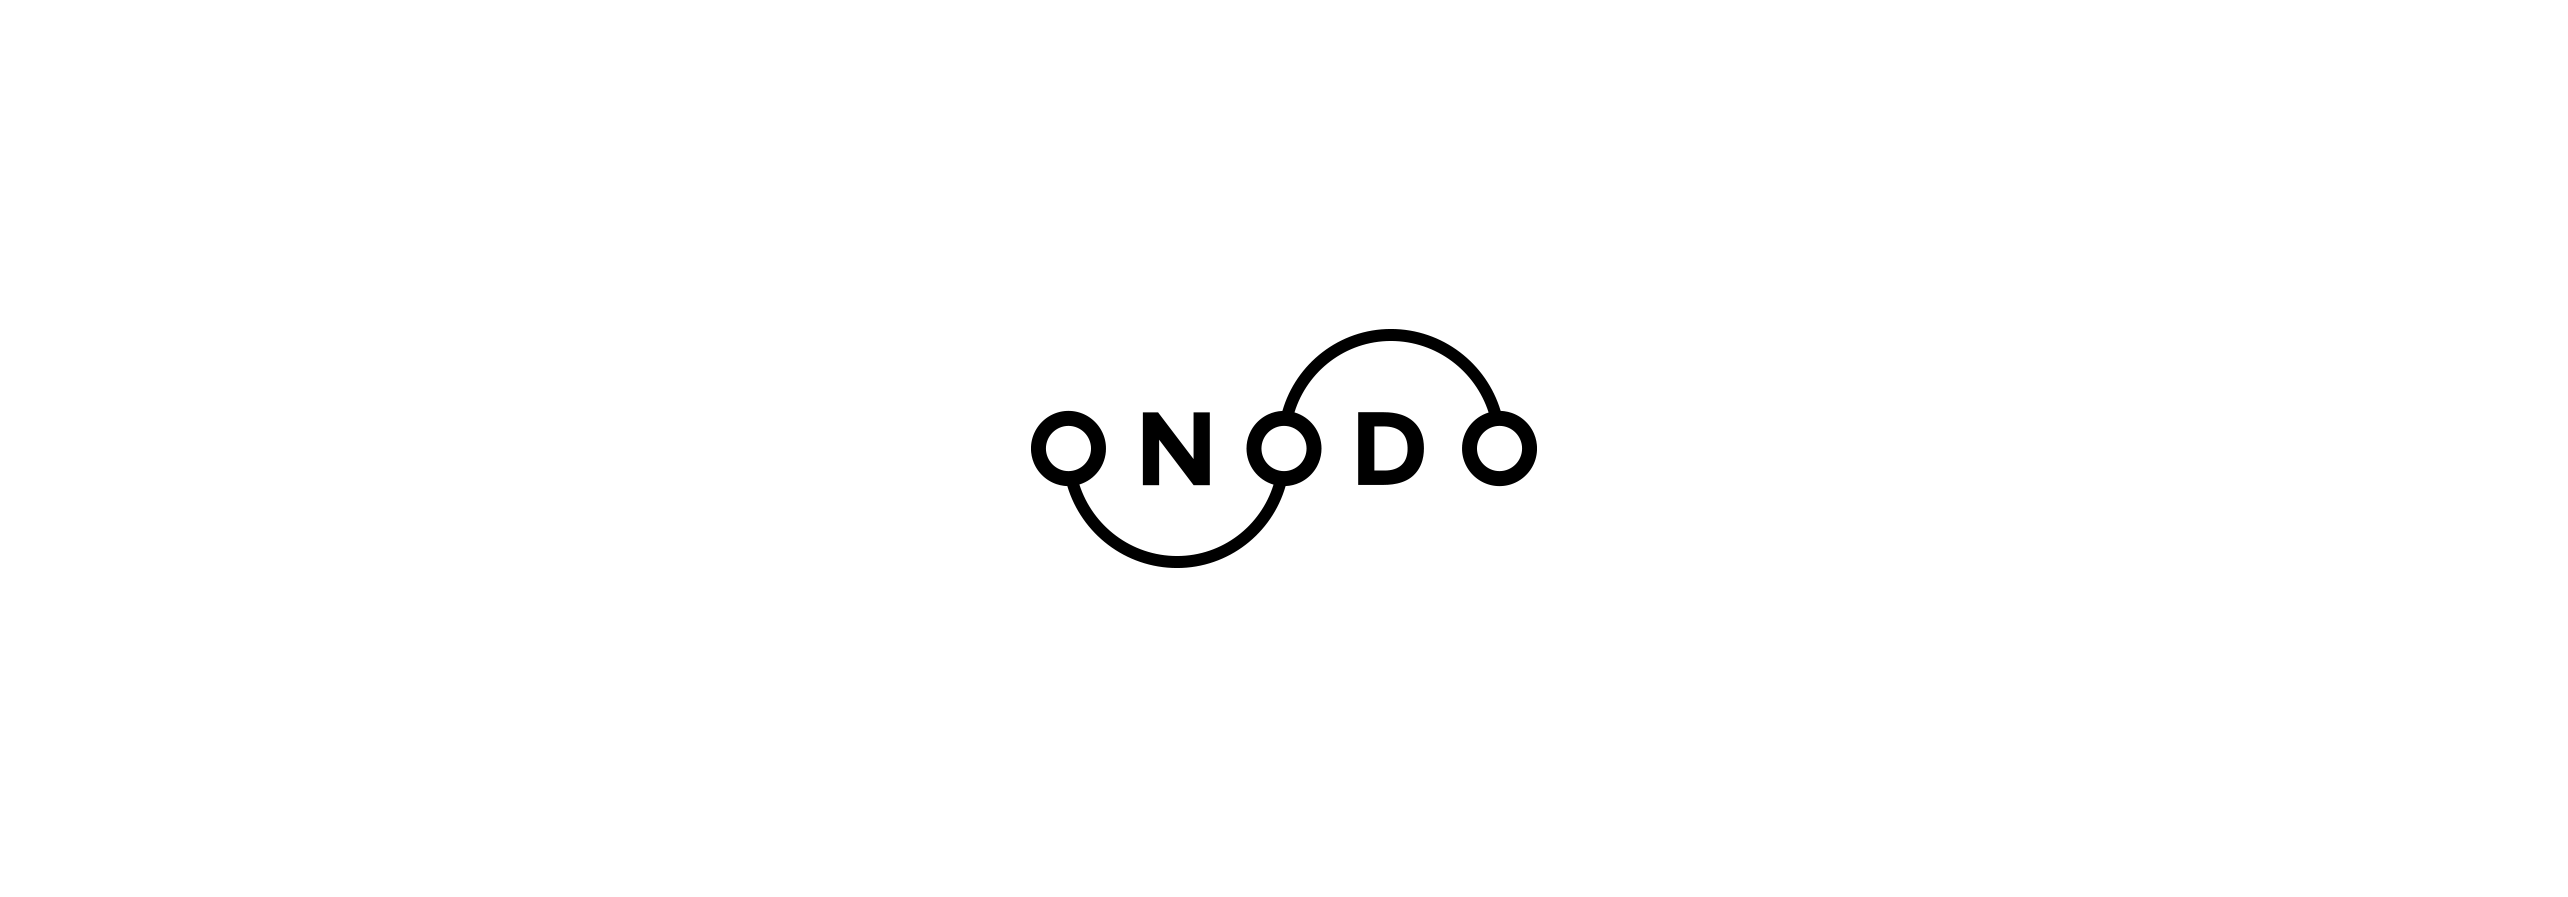 Onodo Branding & UI Design by The Woork Co